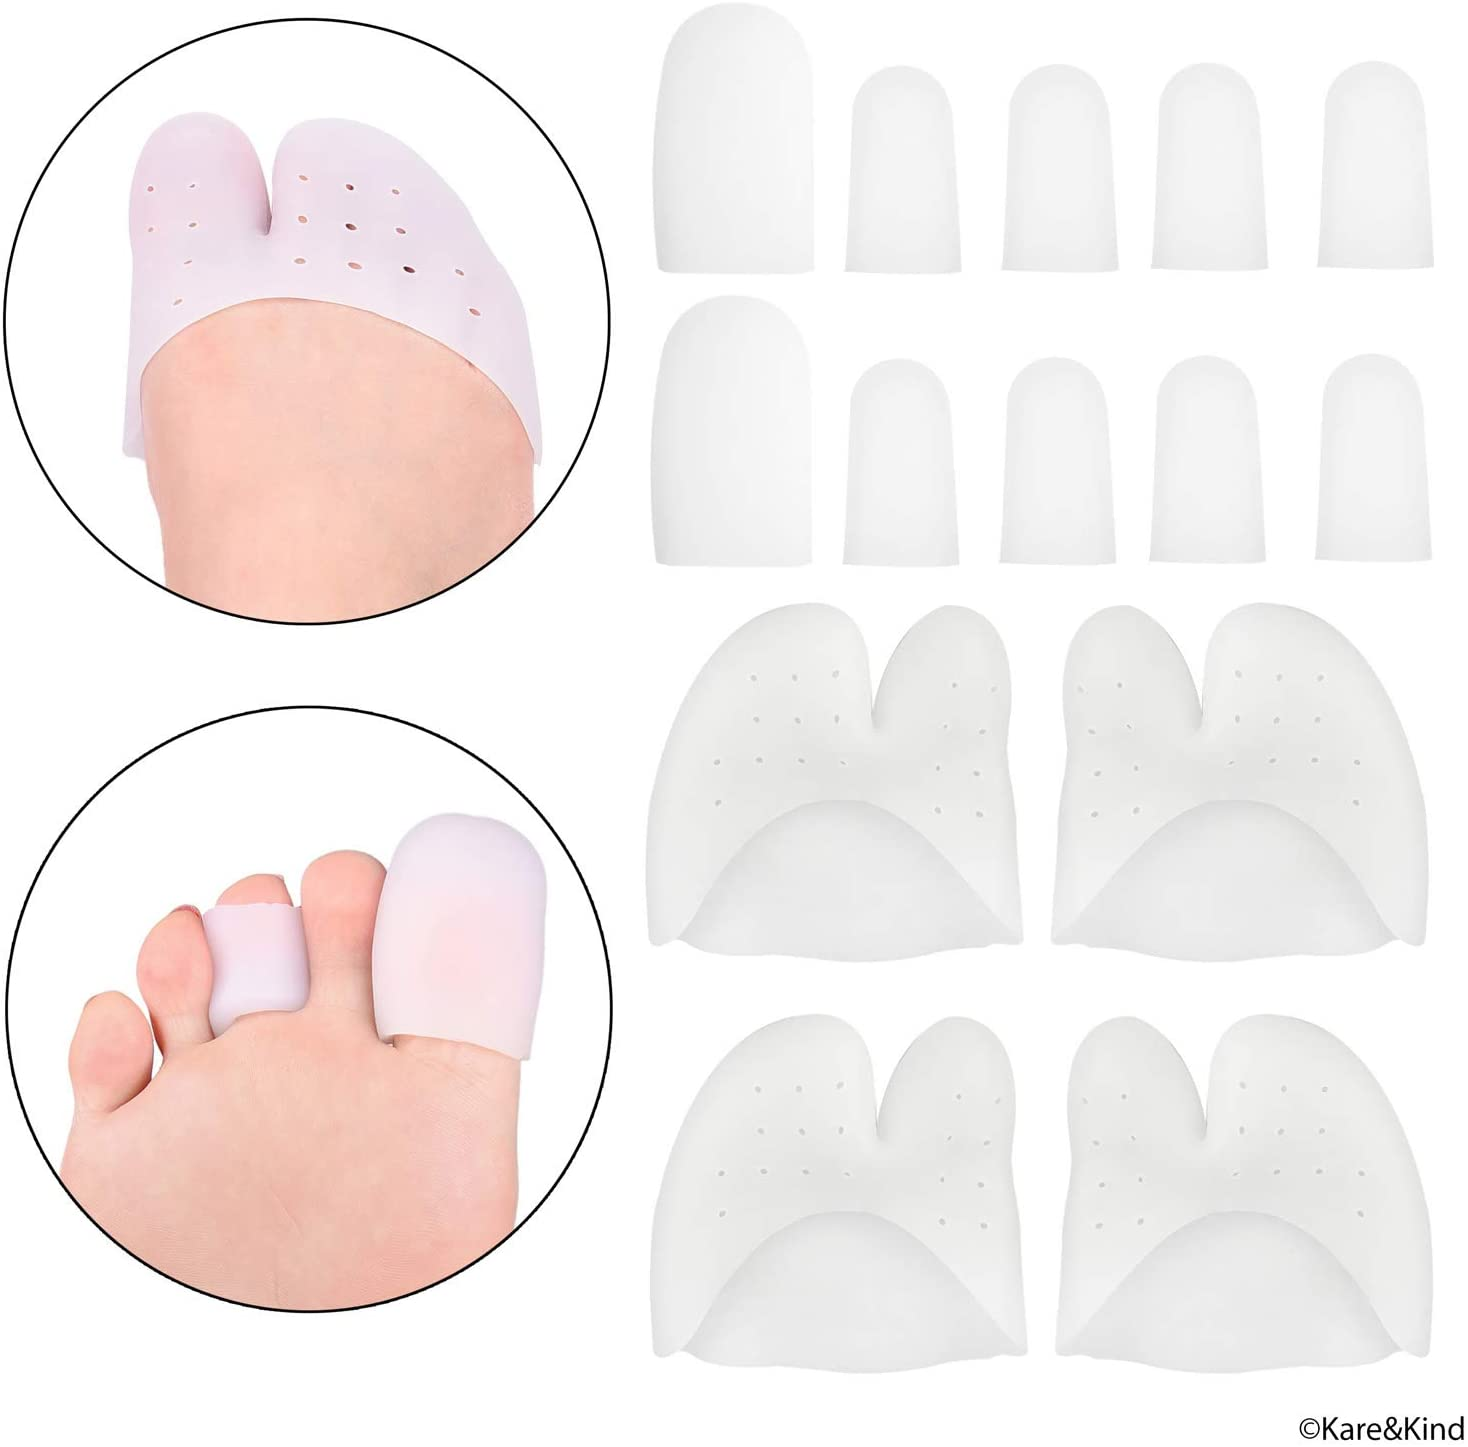 Set of 10 Toe Tube Caps and 4 Toe Sleeves - Soft Silicone - Offers Pain/Friction/Pressure Relief - Ideal for Bunions, Blisters, Corns, Callus Problems, Toenail Loss, Ingrown Toenails, Hammer Toes